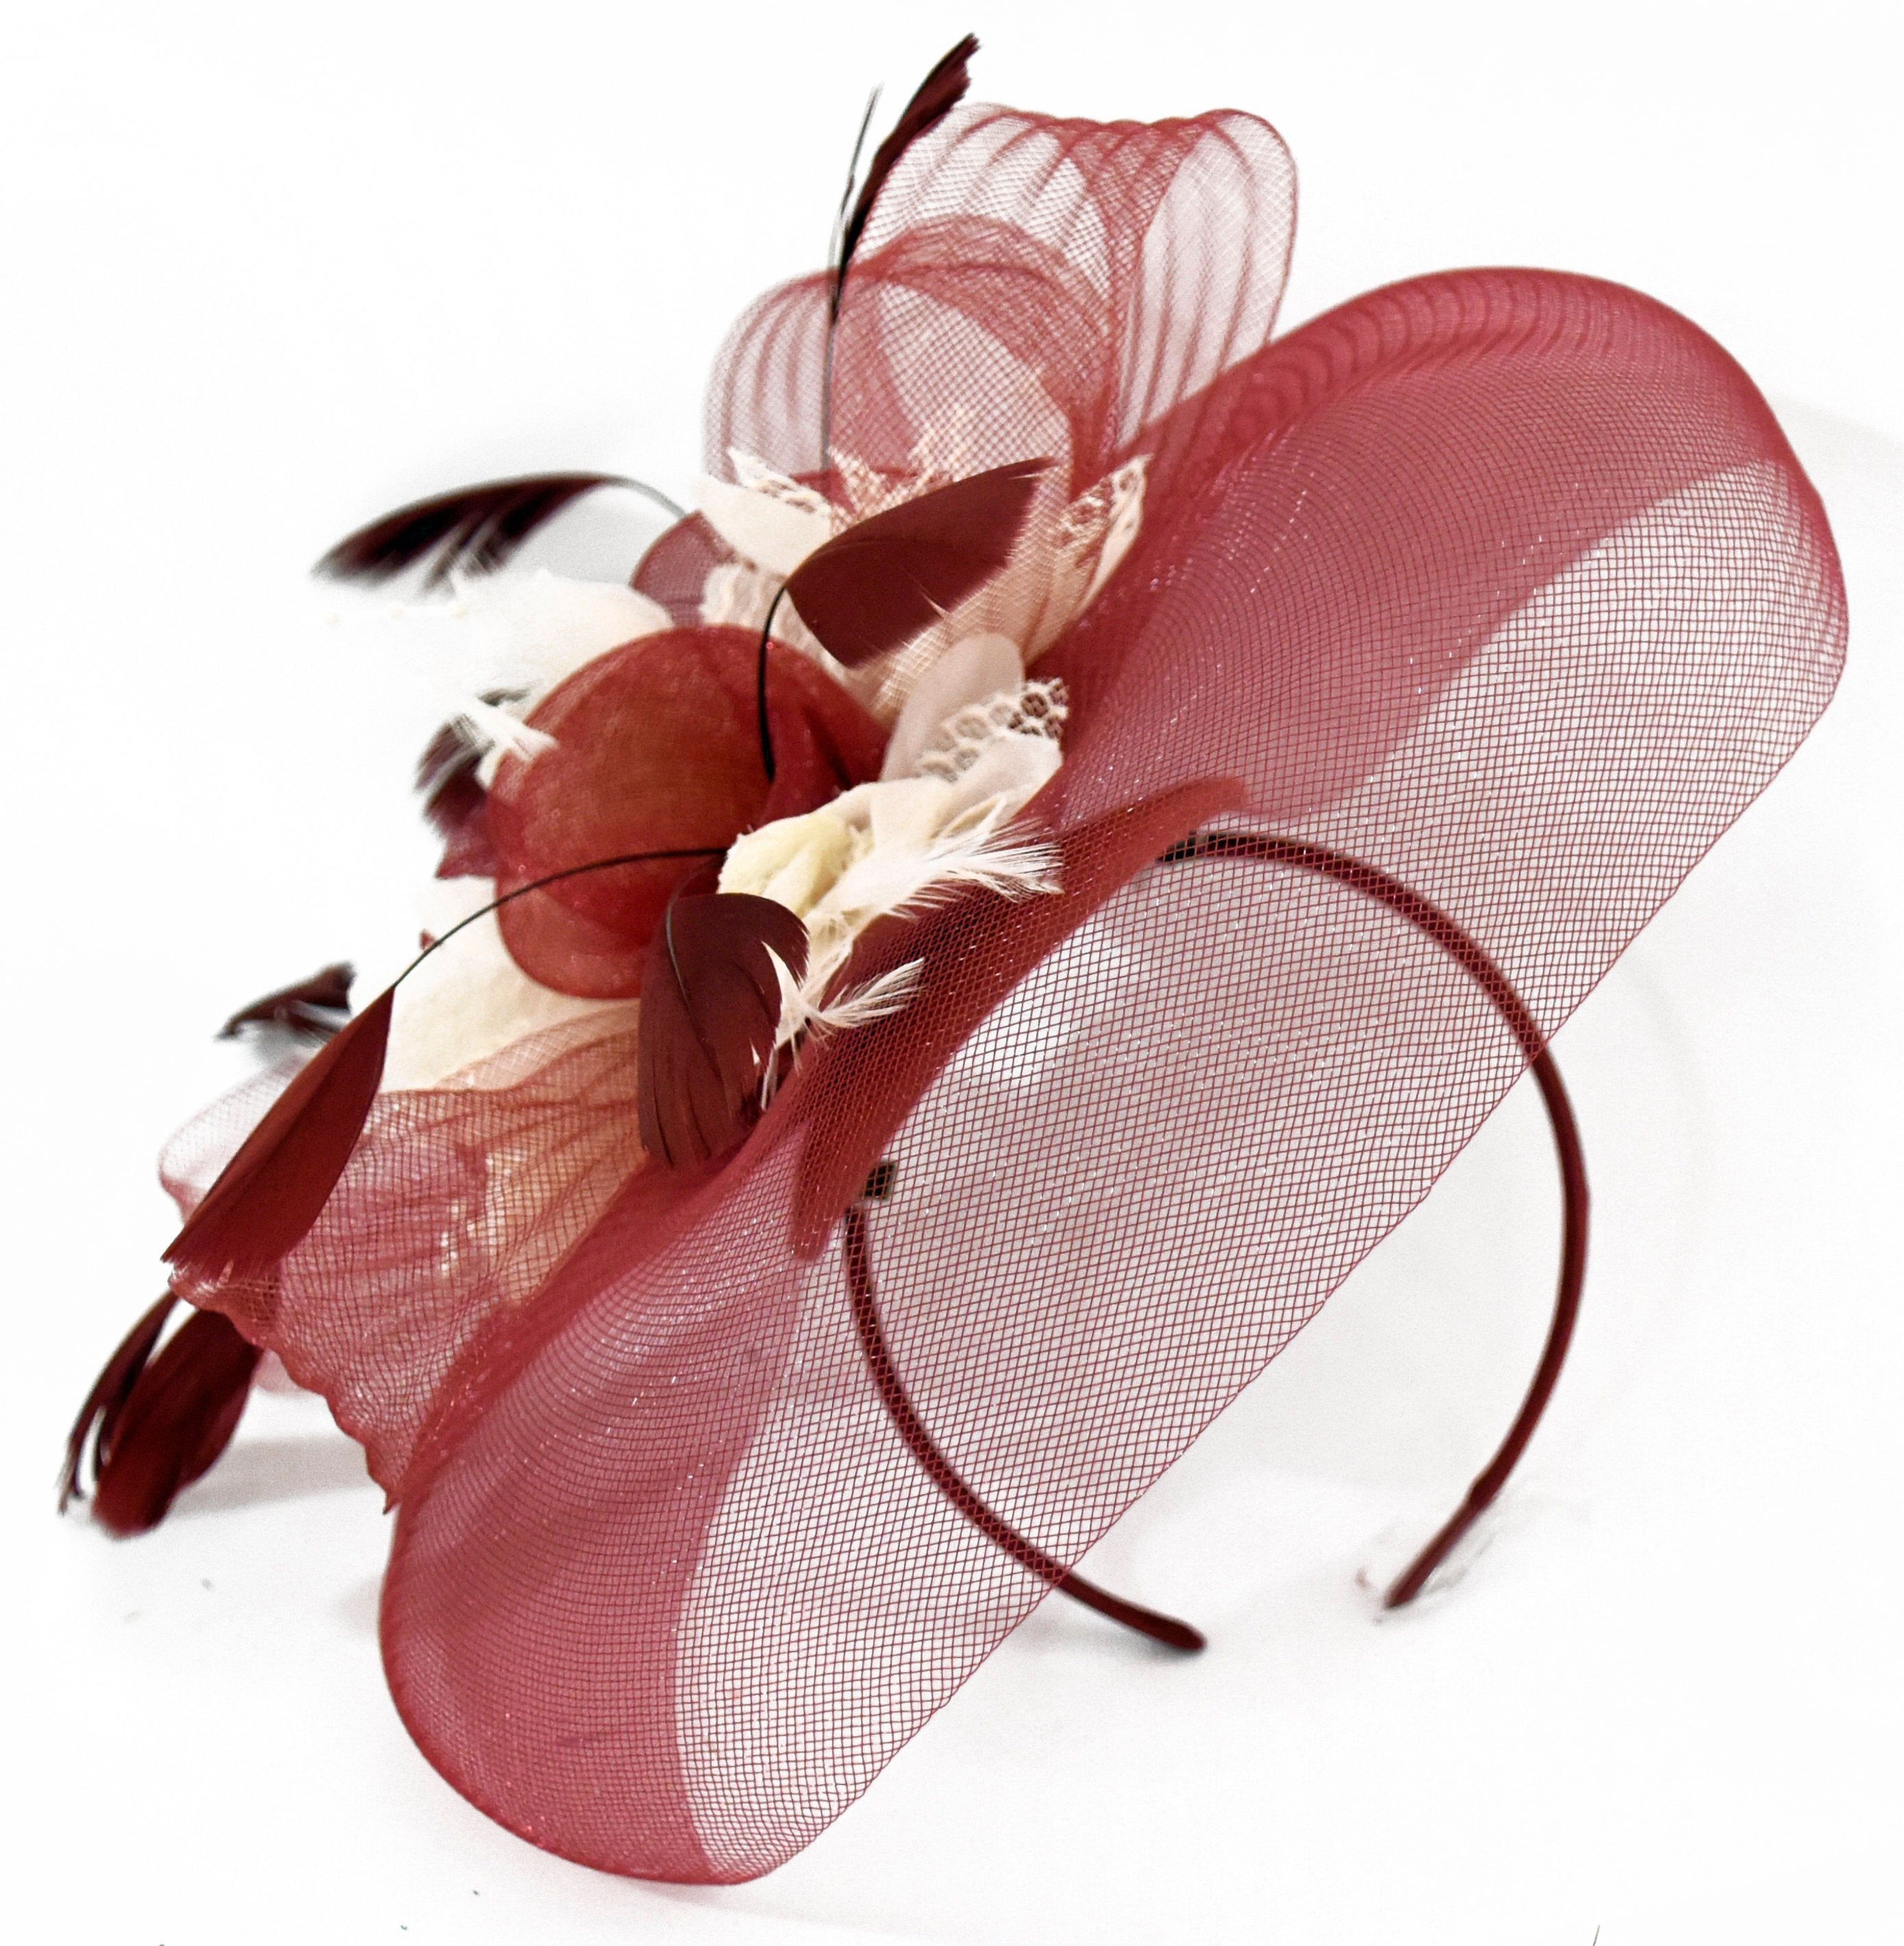 Caprilite Big Burgundy Cream Fascinator Hat Veil Net Hair Clip Ascot Derby Races Wedding Headband Feather Flower